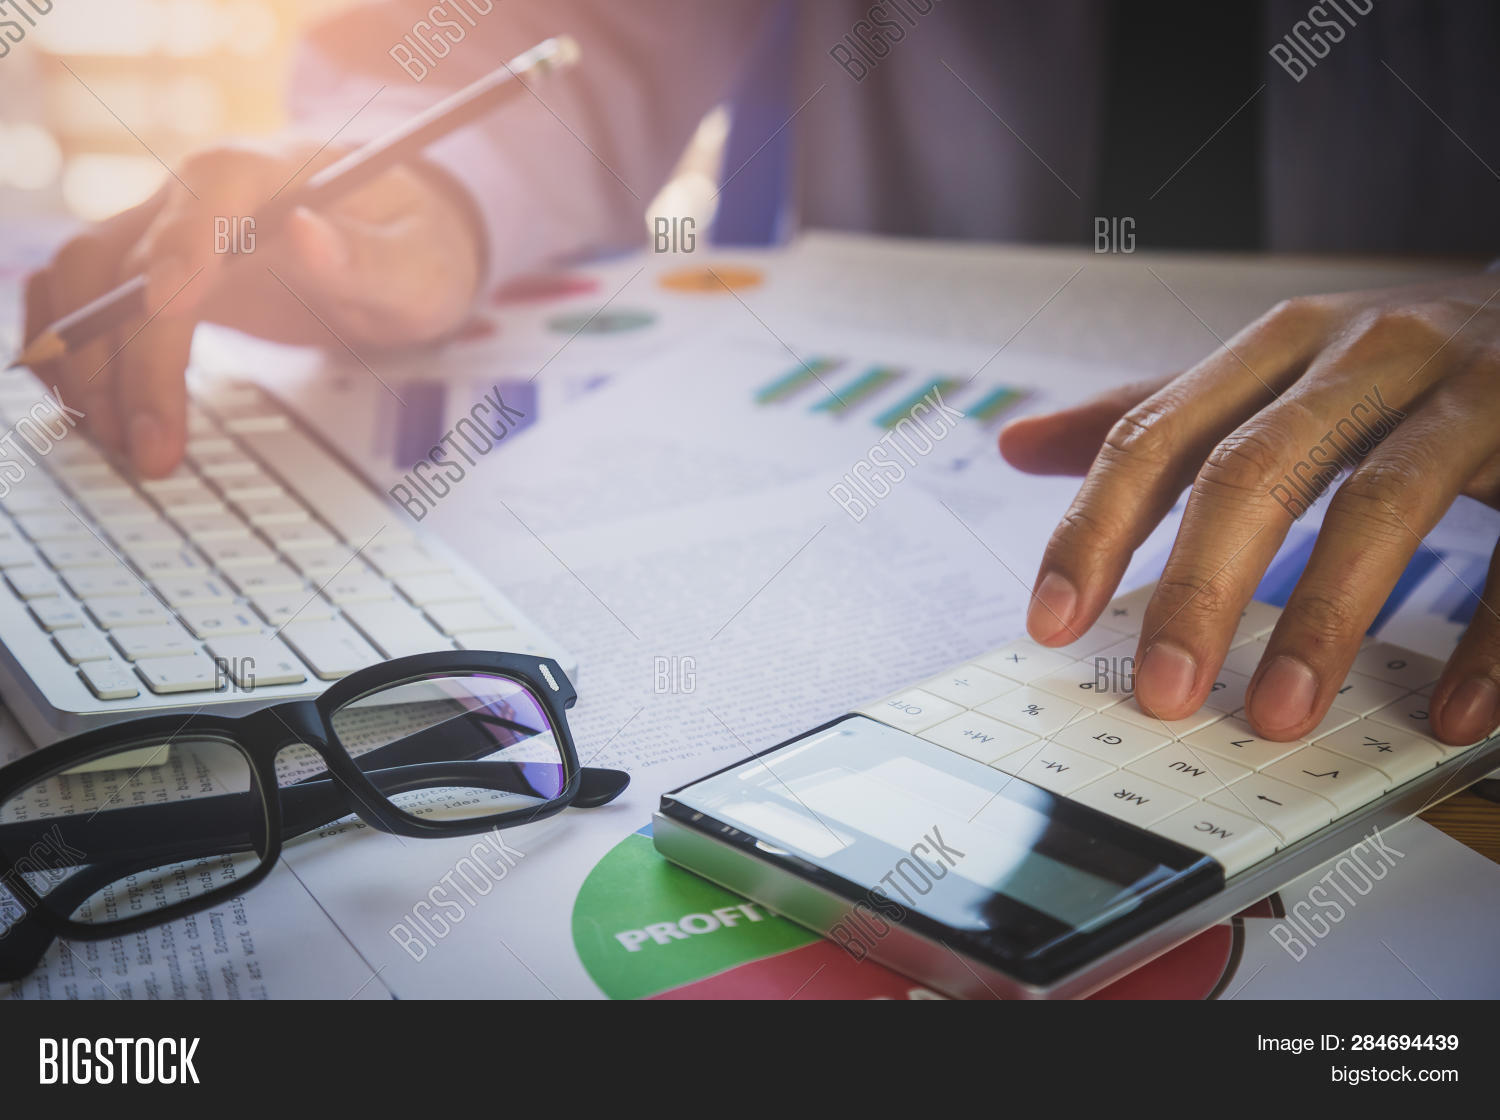 Businessman Or Accountant Working On Calculator To Calculate Business Data Concept. Accounting,inves